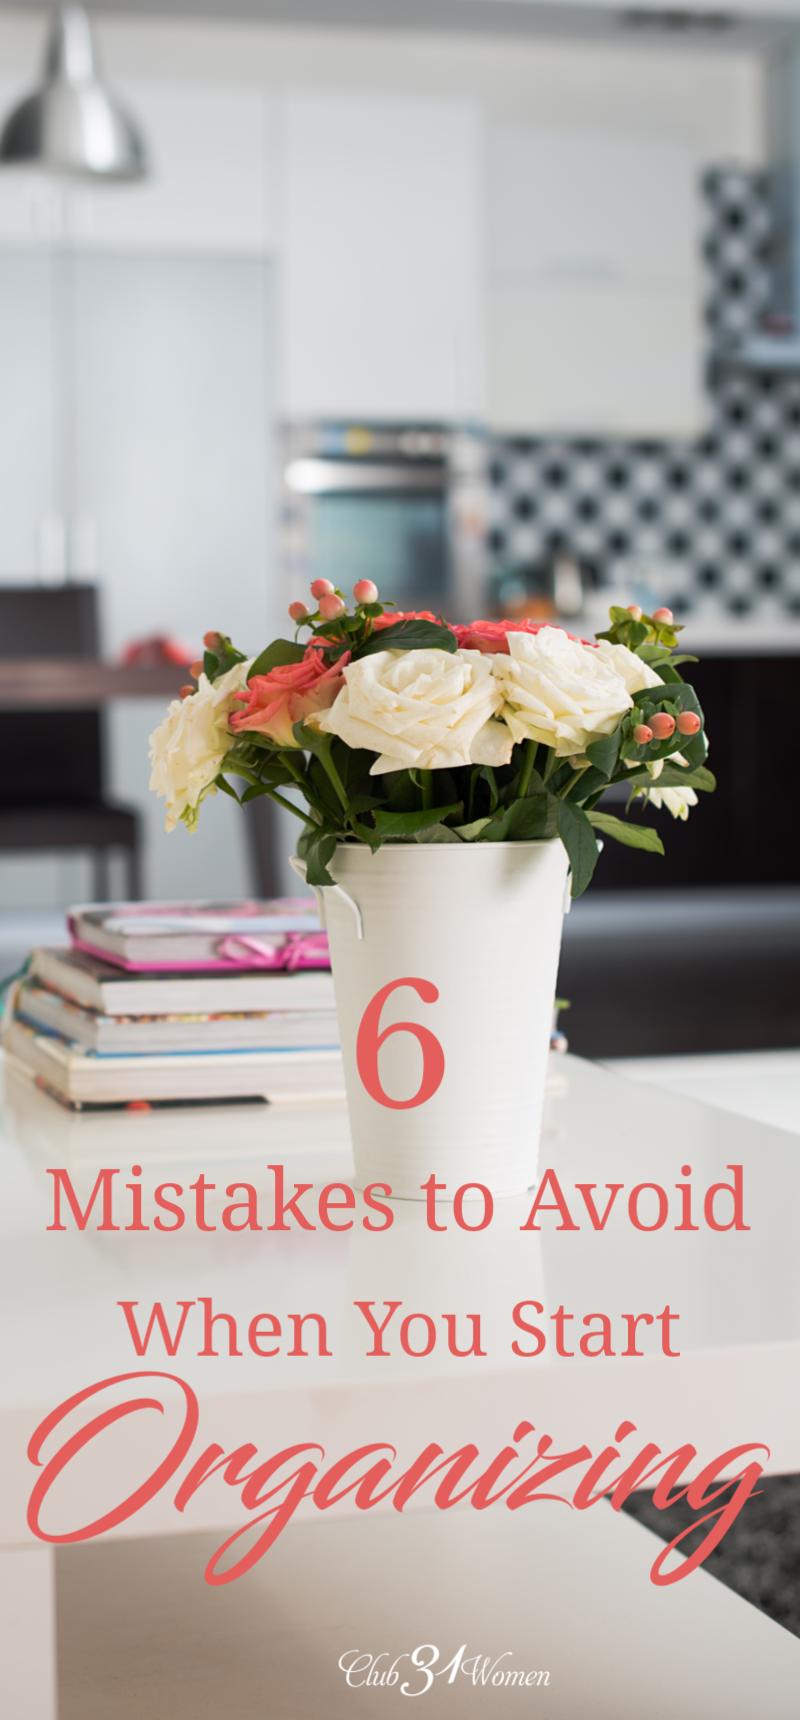 How can you create a home you love spending time in? Let's look at the biggest organizing mistakes people make...so you don't make the same ones. via @Club31Women